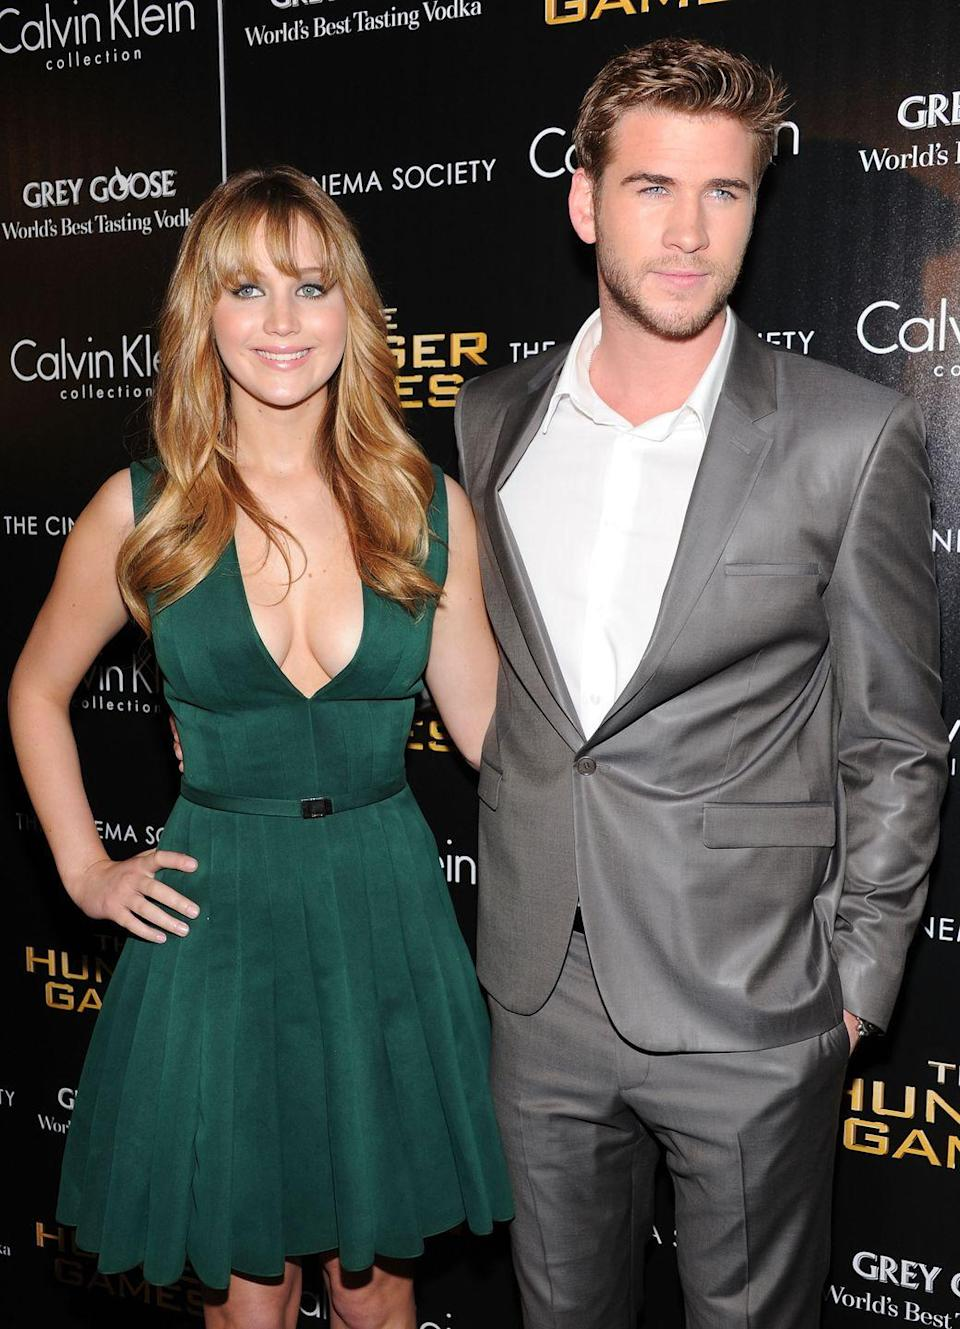 "<p>The Aussie actor got real on macking with his <em>Hunger Games</em> costar Jennifer Lawrence, stating it was ""pretty uncomfortable.""</p><p>""Anytime I had to kiss [Jennifer Lawrence] was pretty uncomfortable,"" <a href=""https://people.com/celebrity/celebs-get-honest-about-best-worst-on-screen-kisses/?slide=501222#501222"" rel=""nofollow noopener"" target=""_blank"" data-ylk=""slk:he said."" class=""link rapid-noclick-resp"">he said.</a> ""When you look at it on the outside, it looks like a great picture. She's one of my best friends, I love her, but if we had a kissing scene, she would make a point of eating garlic or tuna fish or something that was disgusting. Right before the scene, she'd be like, 'Yeah, I ate tuna,' or 'I had garlic, and I didn't brush my teeth.' And I'd be like, 'Fantastic, I can't wait to get in there and taste it!'""</p>"